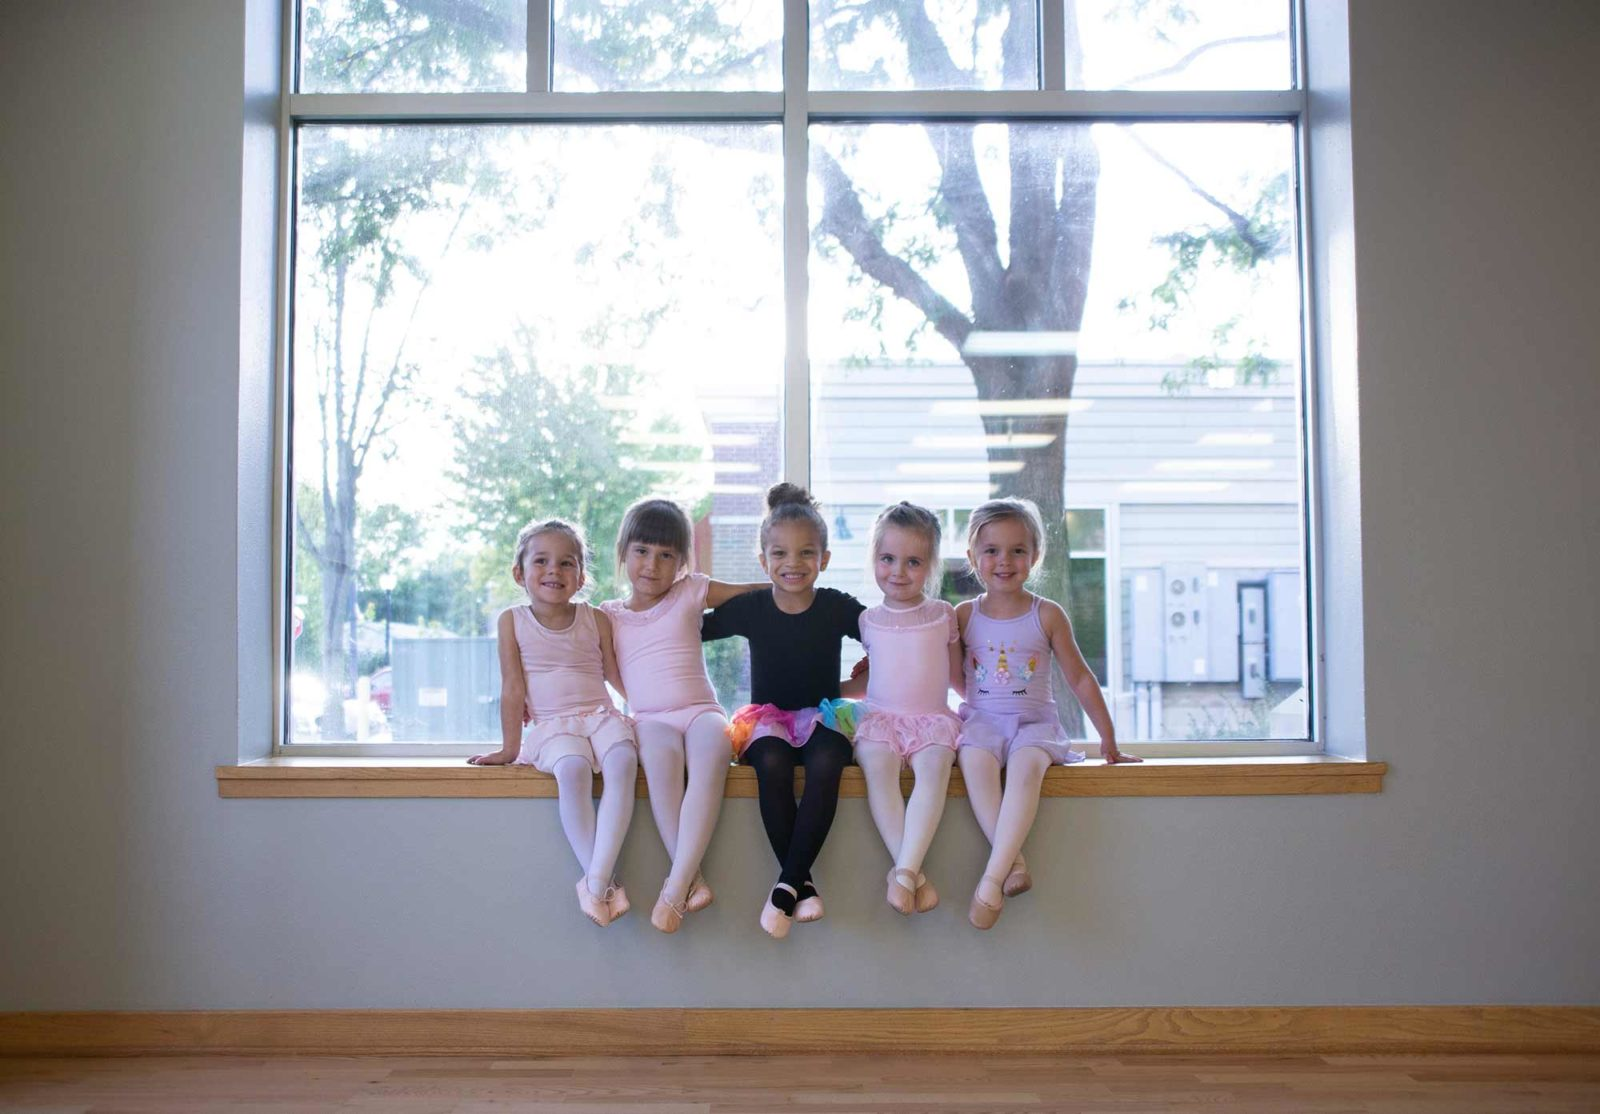 Young dancers sitting on a window ledge